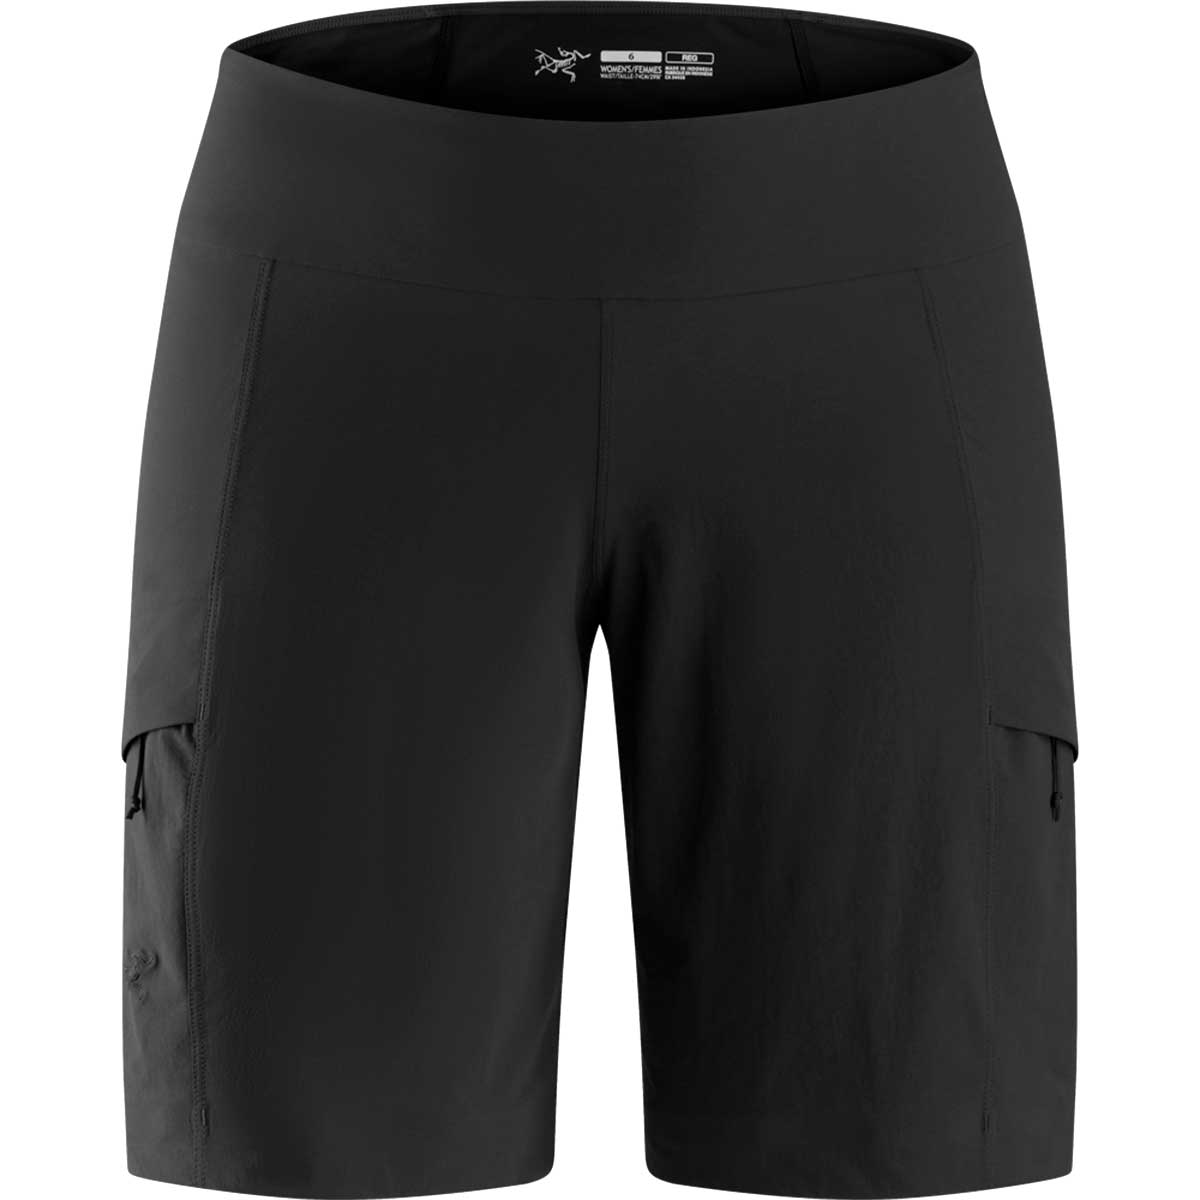 Arcteryx women's Sabria shorts in black